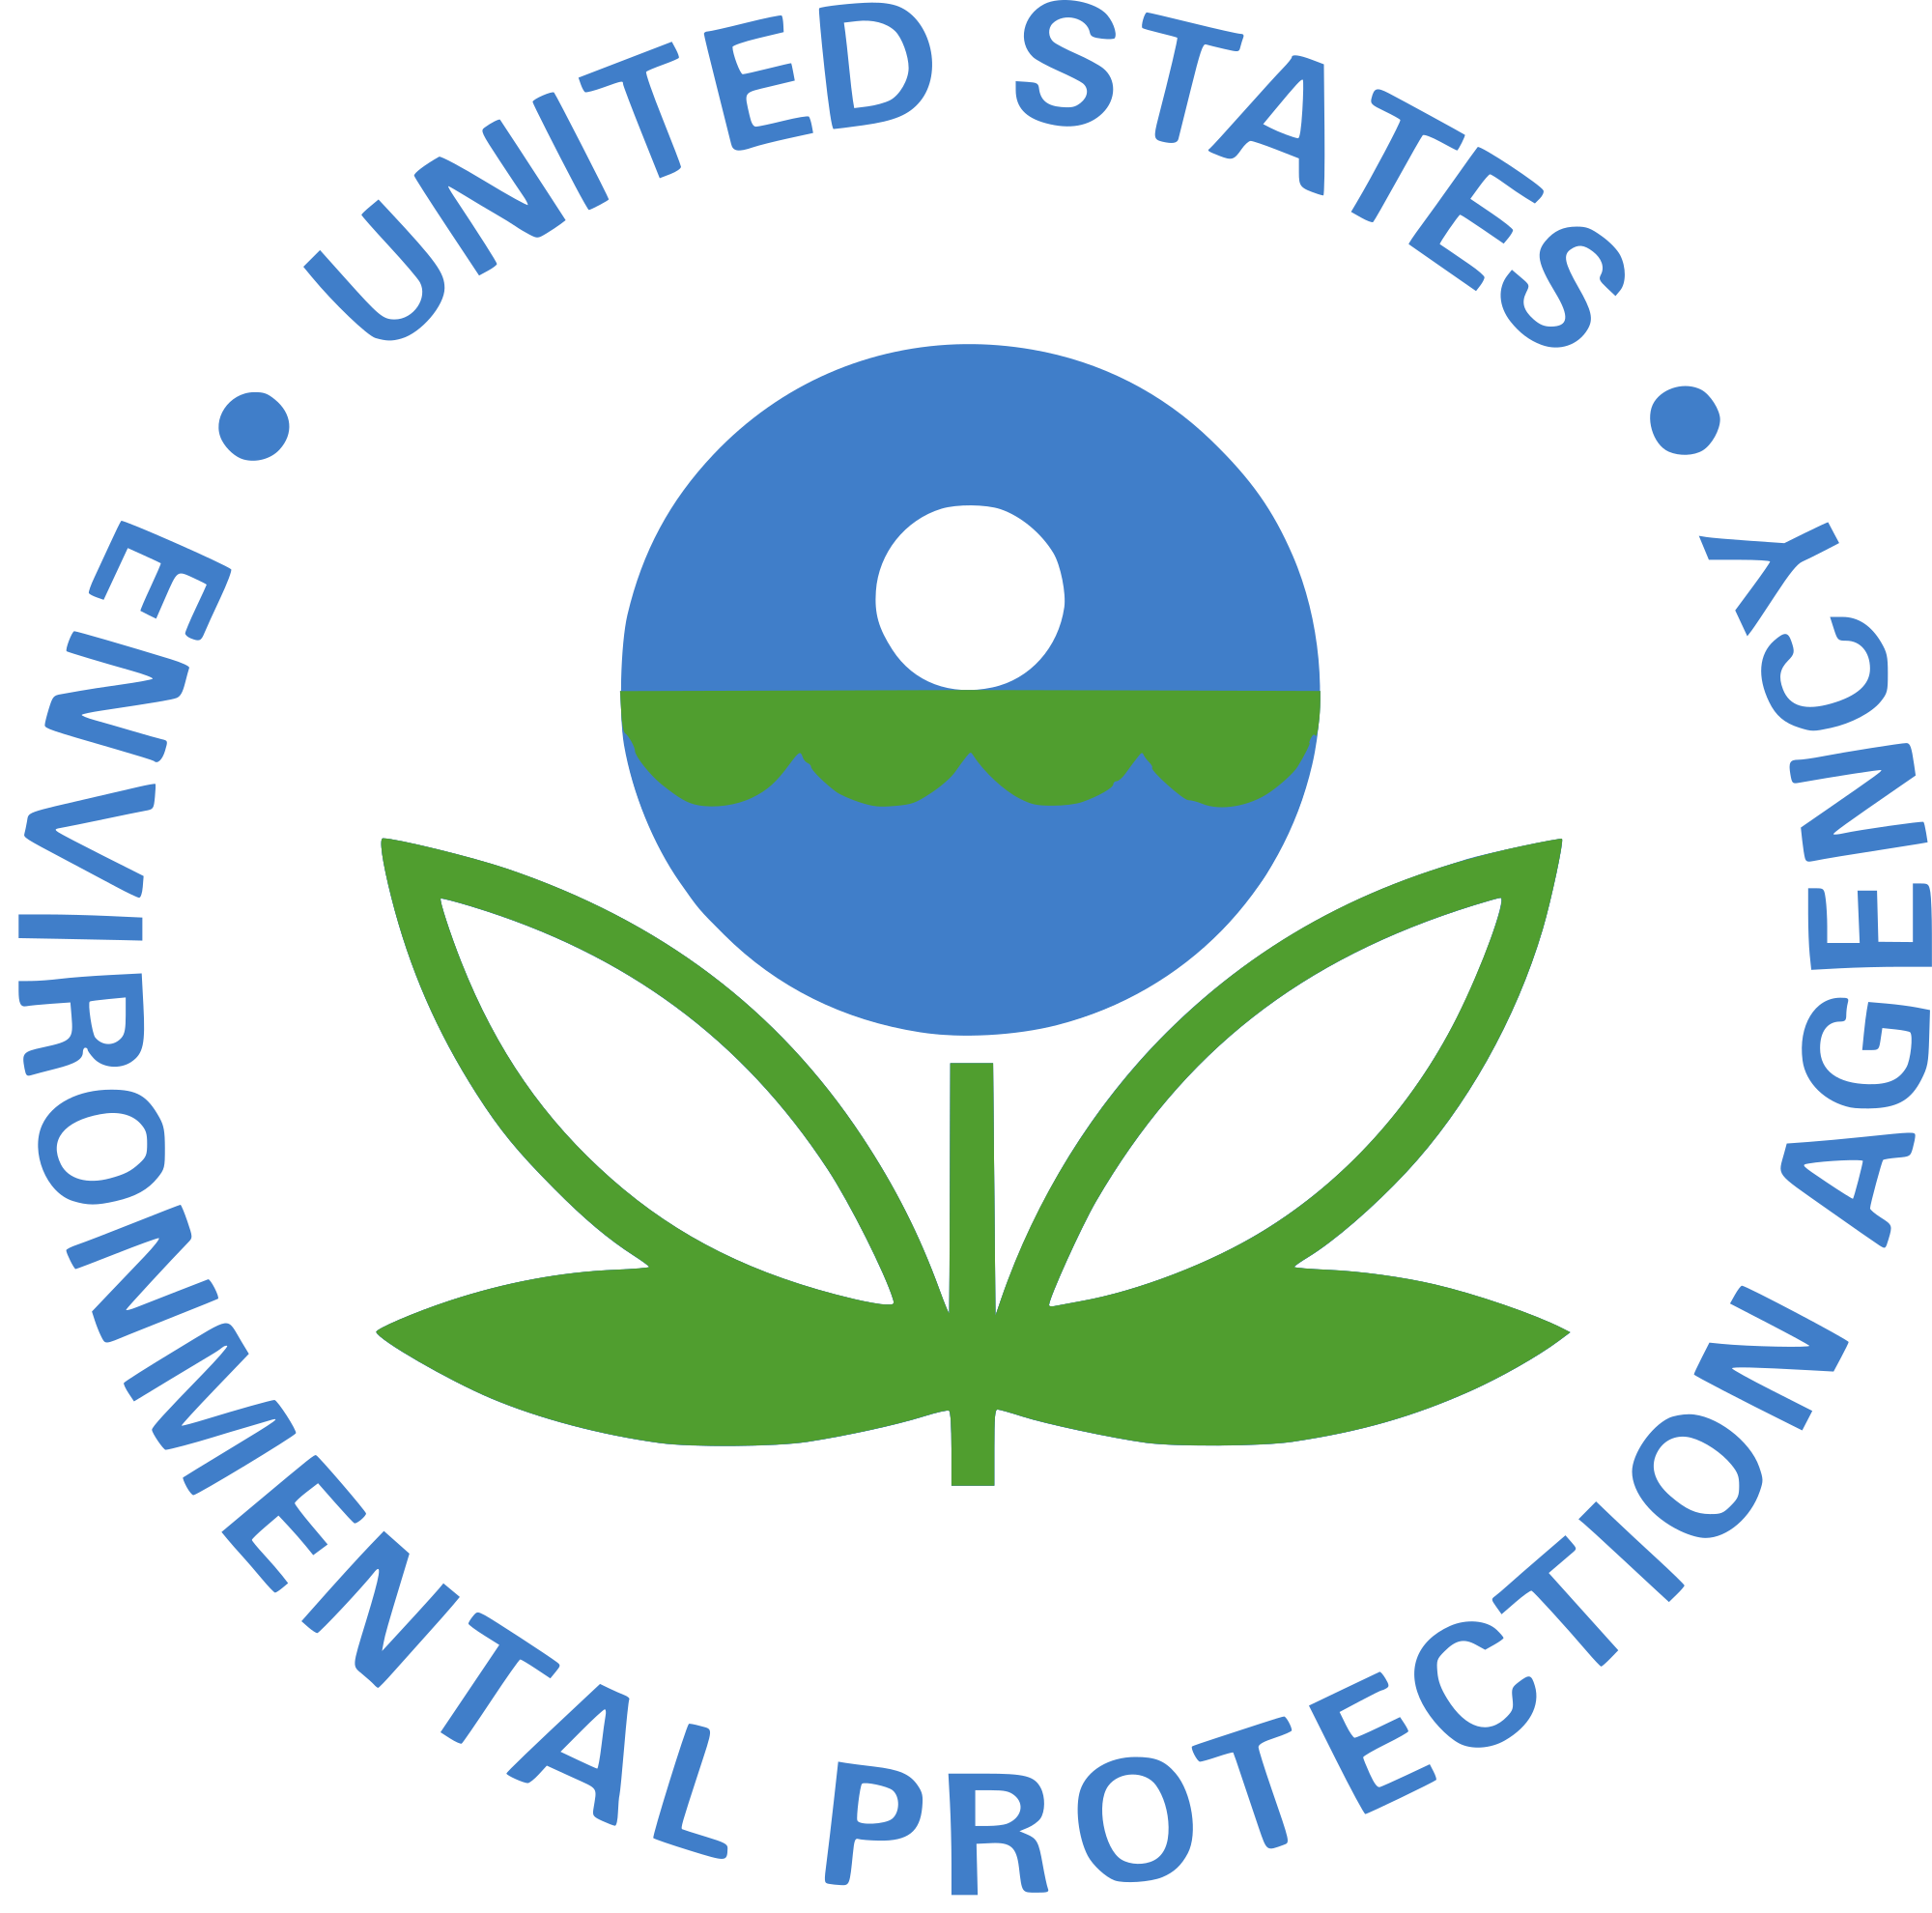 U.S. Environmental Protection Agency(EPA) logo